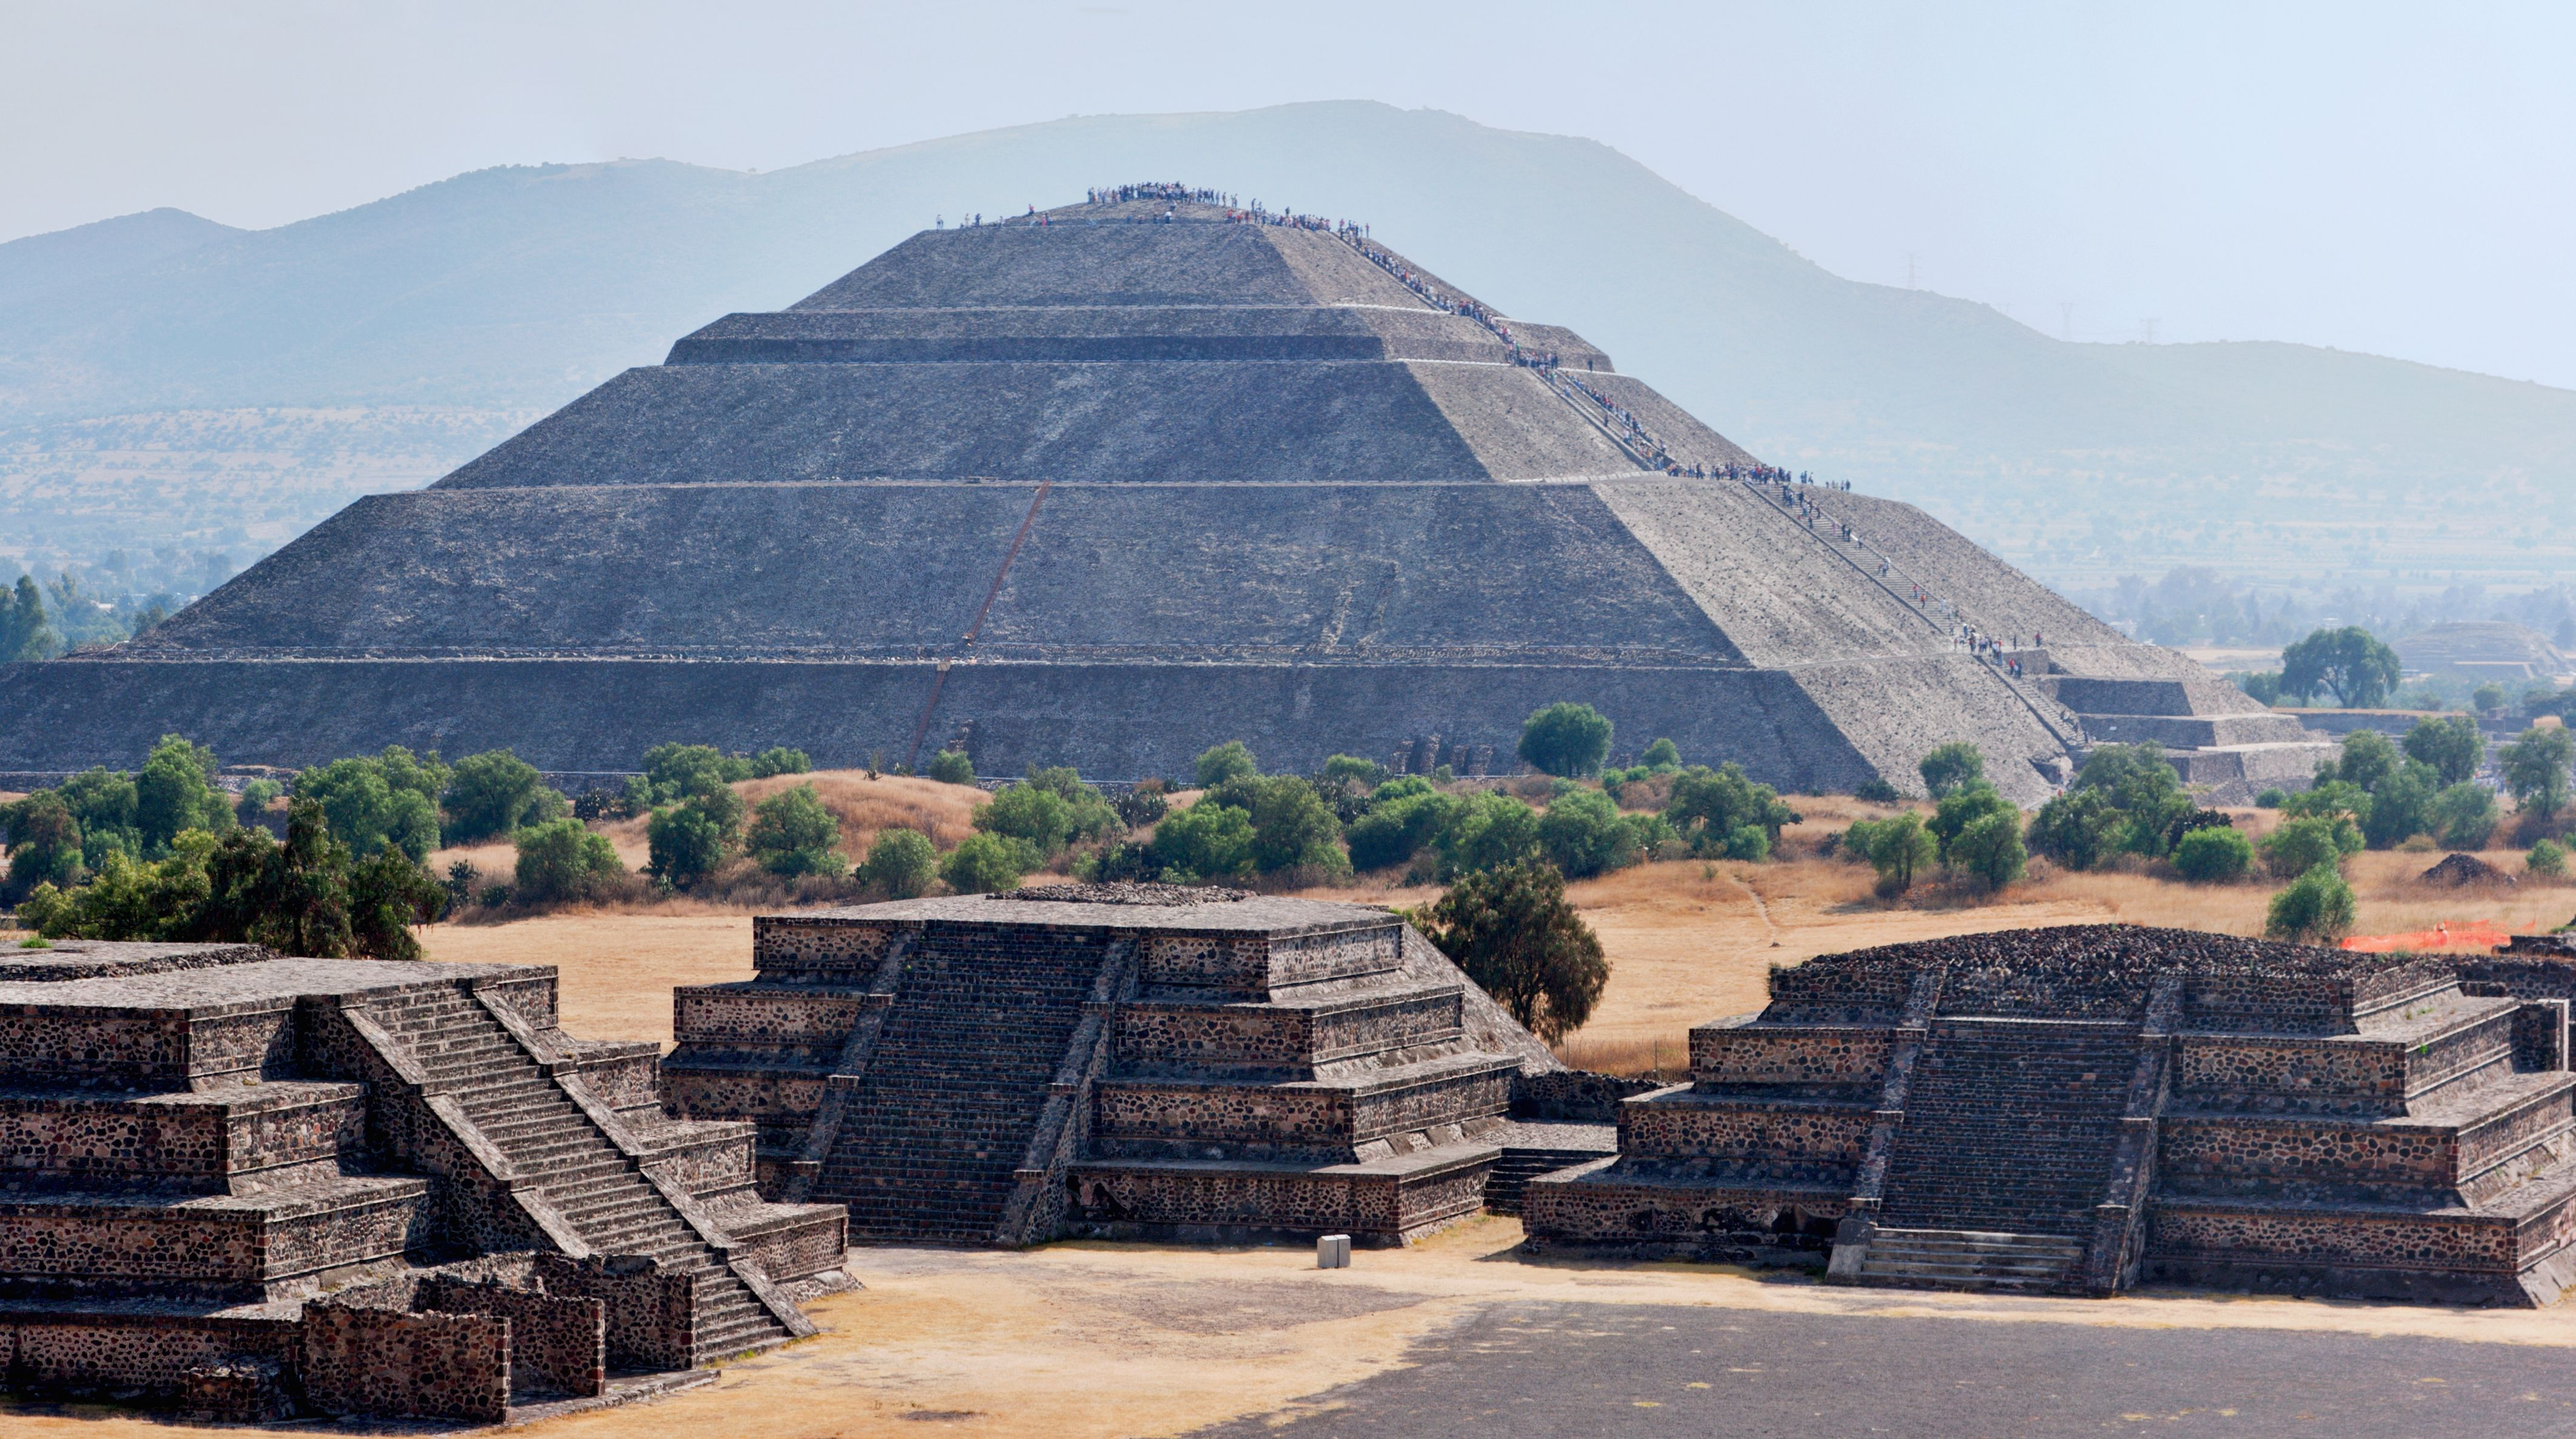 Aztec Pyramid Of The Sun Mexico Teotihuacan Teotihuacan Pyramid Mexico City Attractions